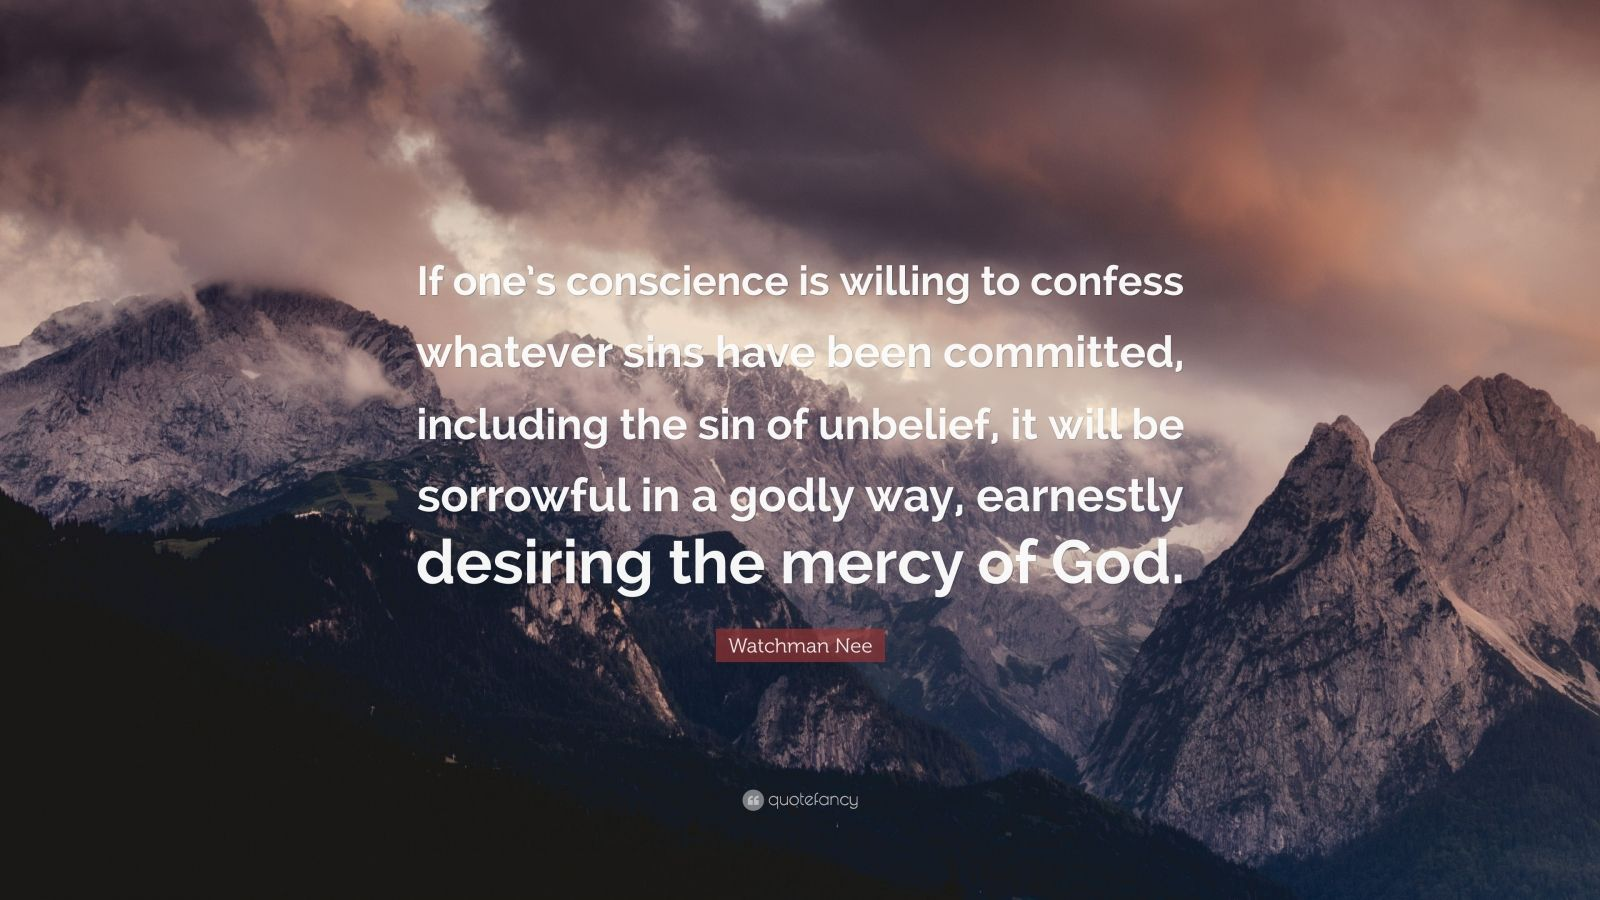 """Watchman Nee Quote: """"If one's conscience is willing to confess whatever sins have been committed, including the sin of unbelief, it will be sorrowful in a godly way, earnestly desiring the mercy of God."""""""